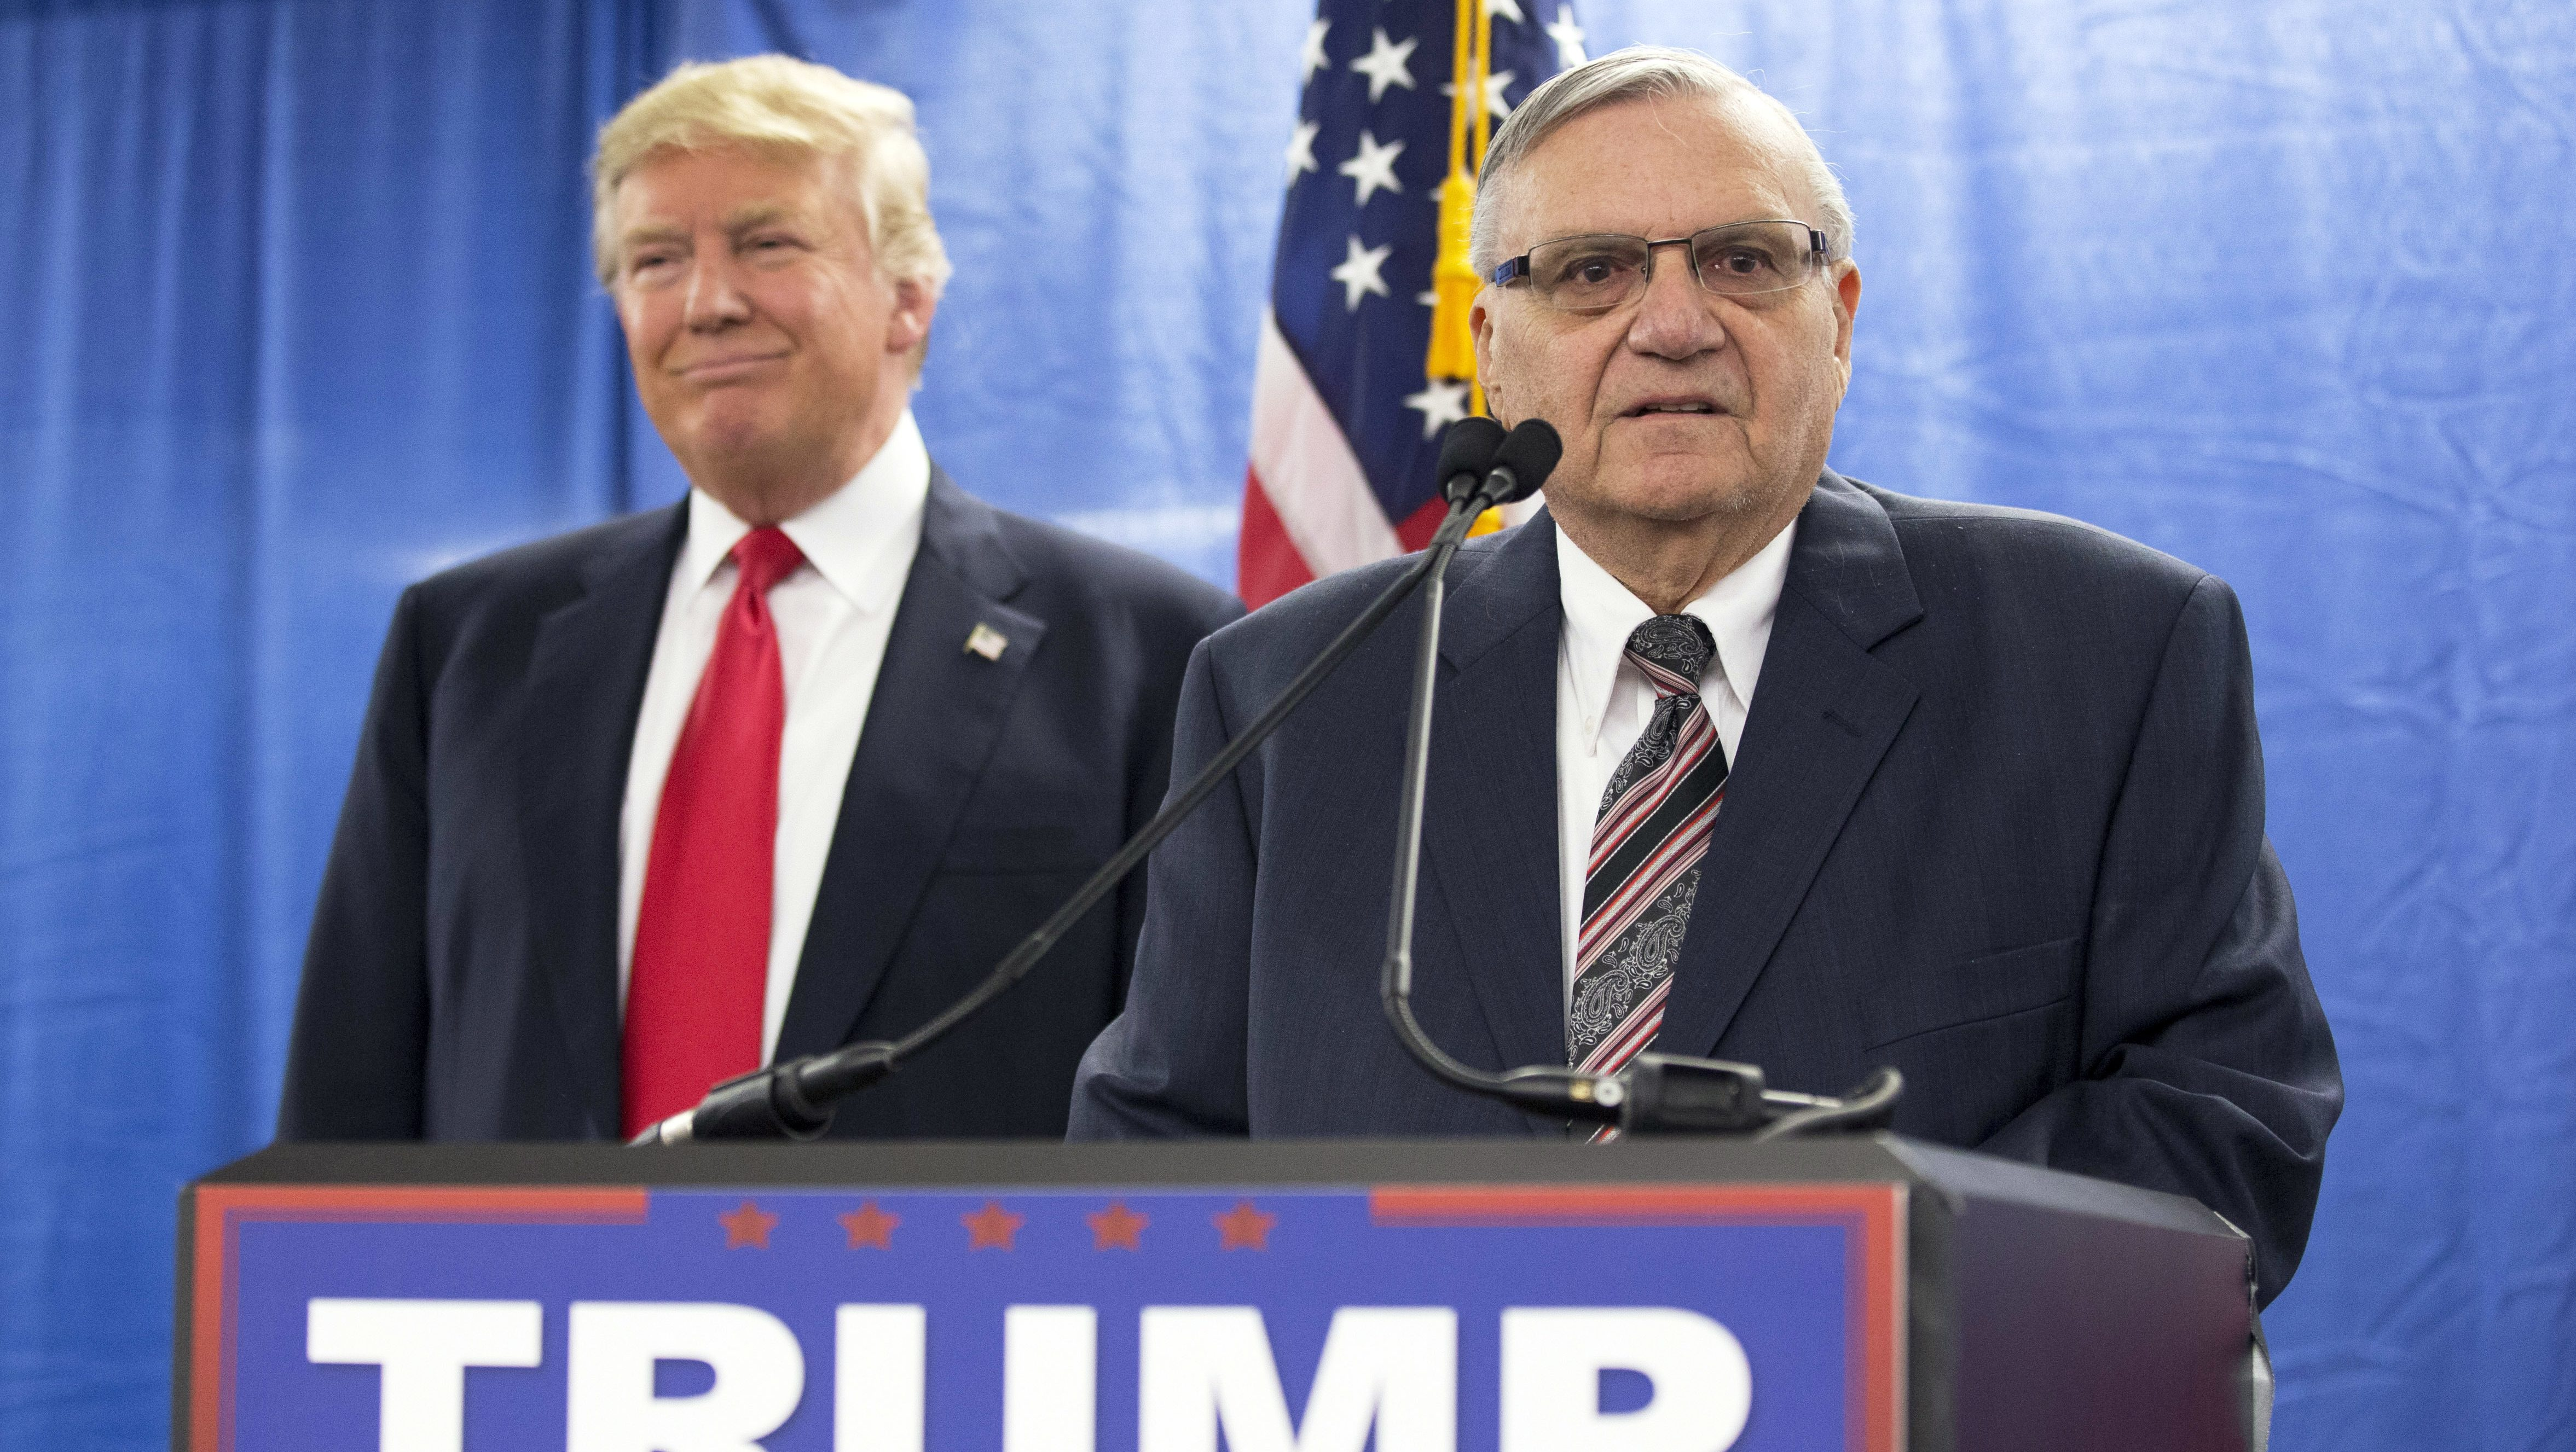 Donald Trump, Joe Arpaio during presidential campaign event